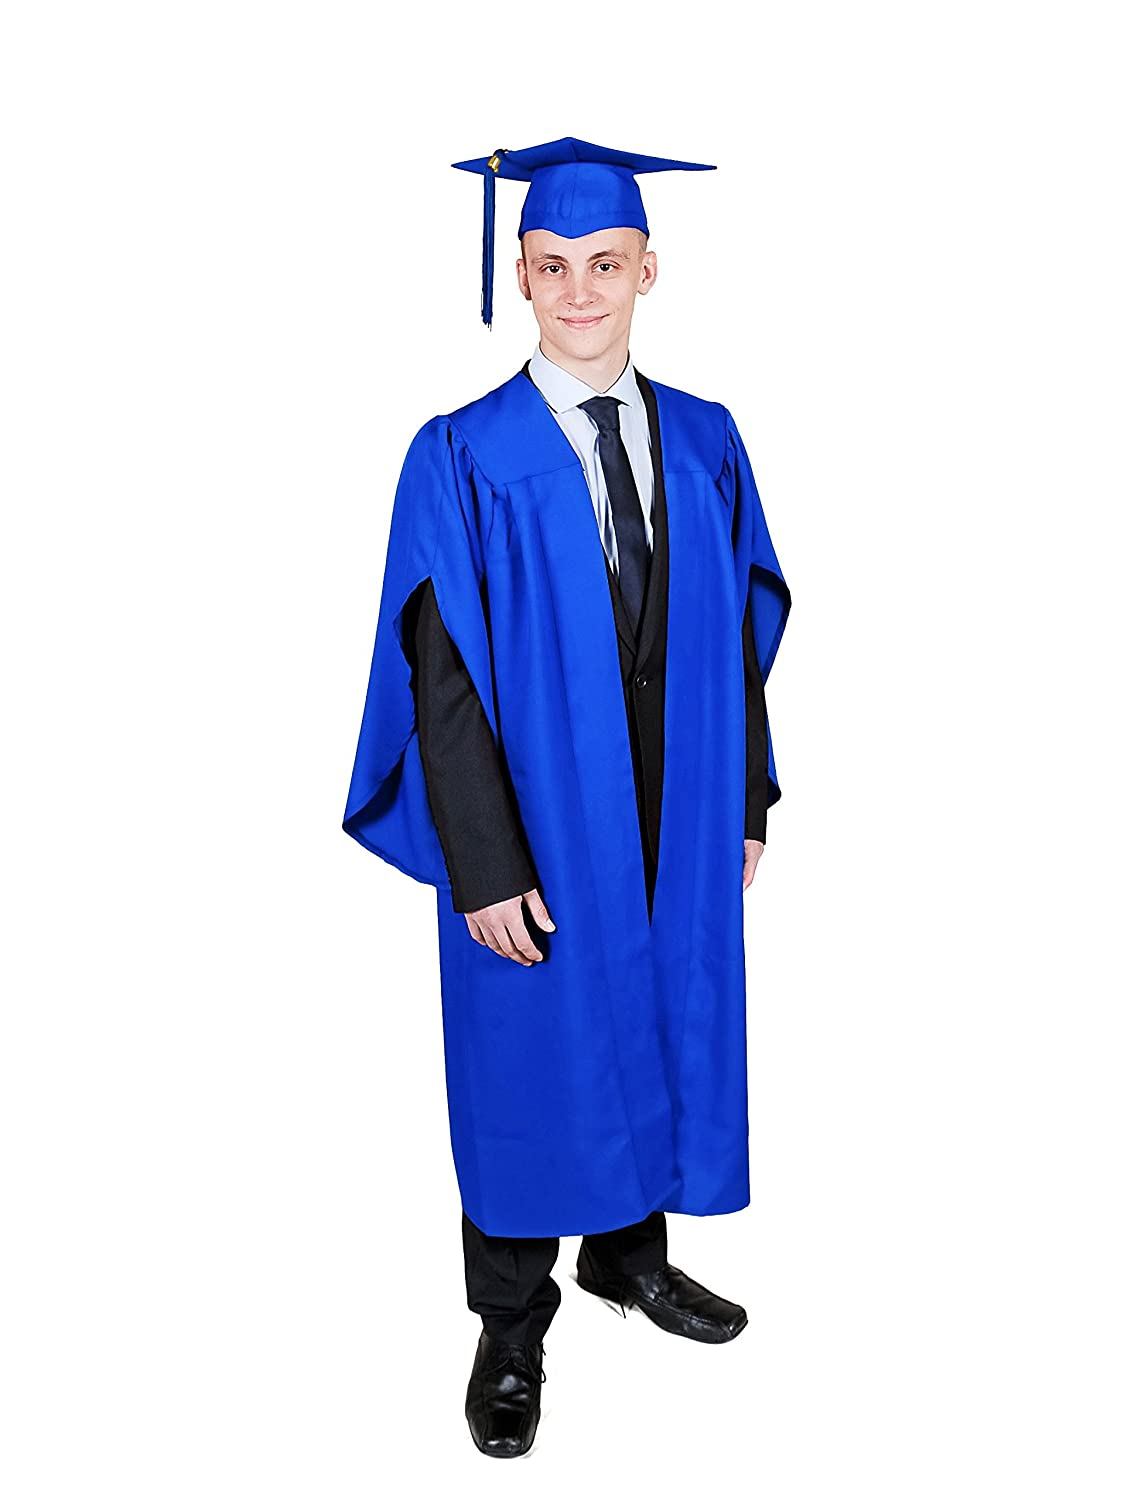 Matte UK Graduation Gown With Cap